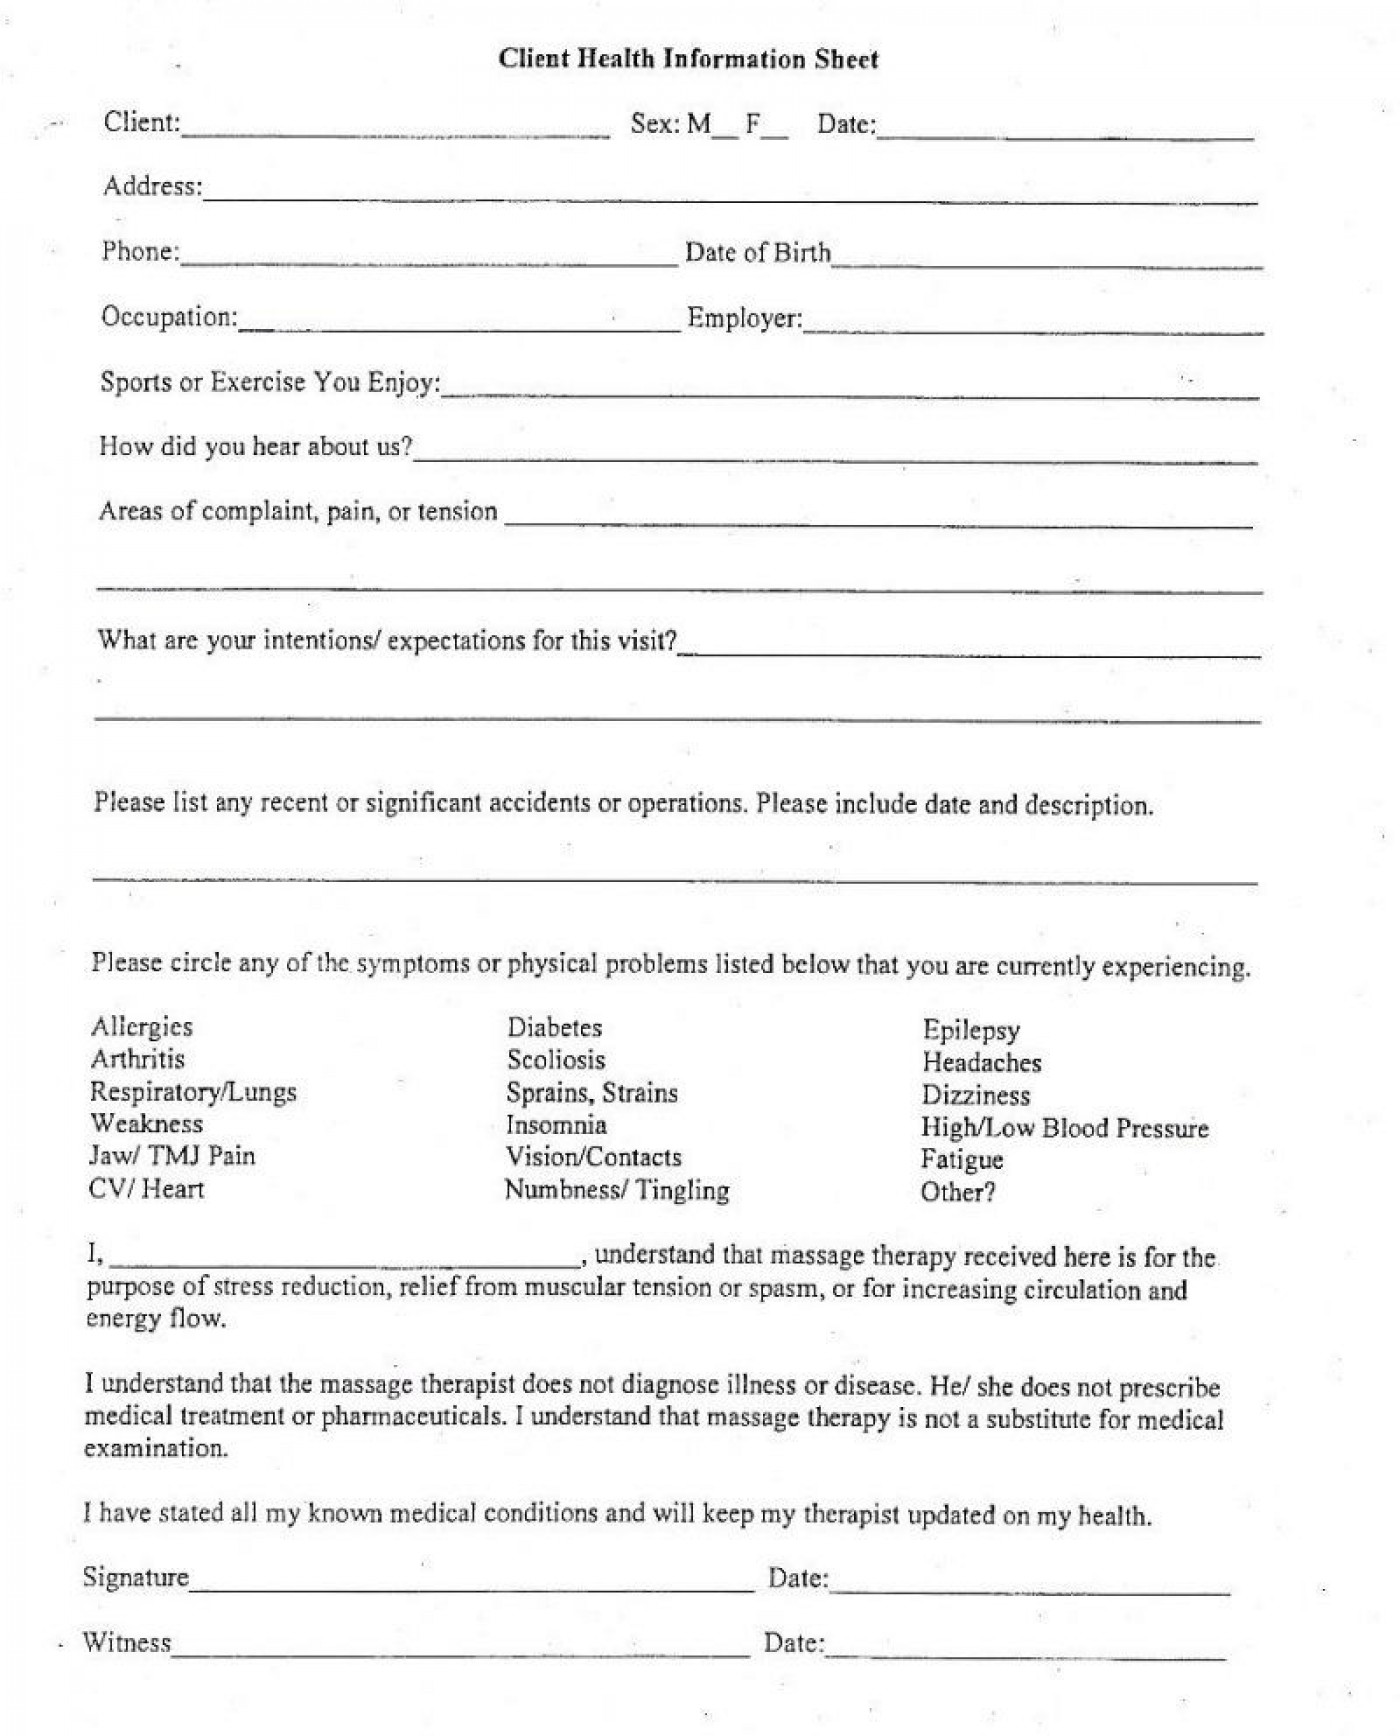 006 Exceptional Client Information Form Template Excel Inspiration 1400